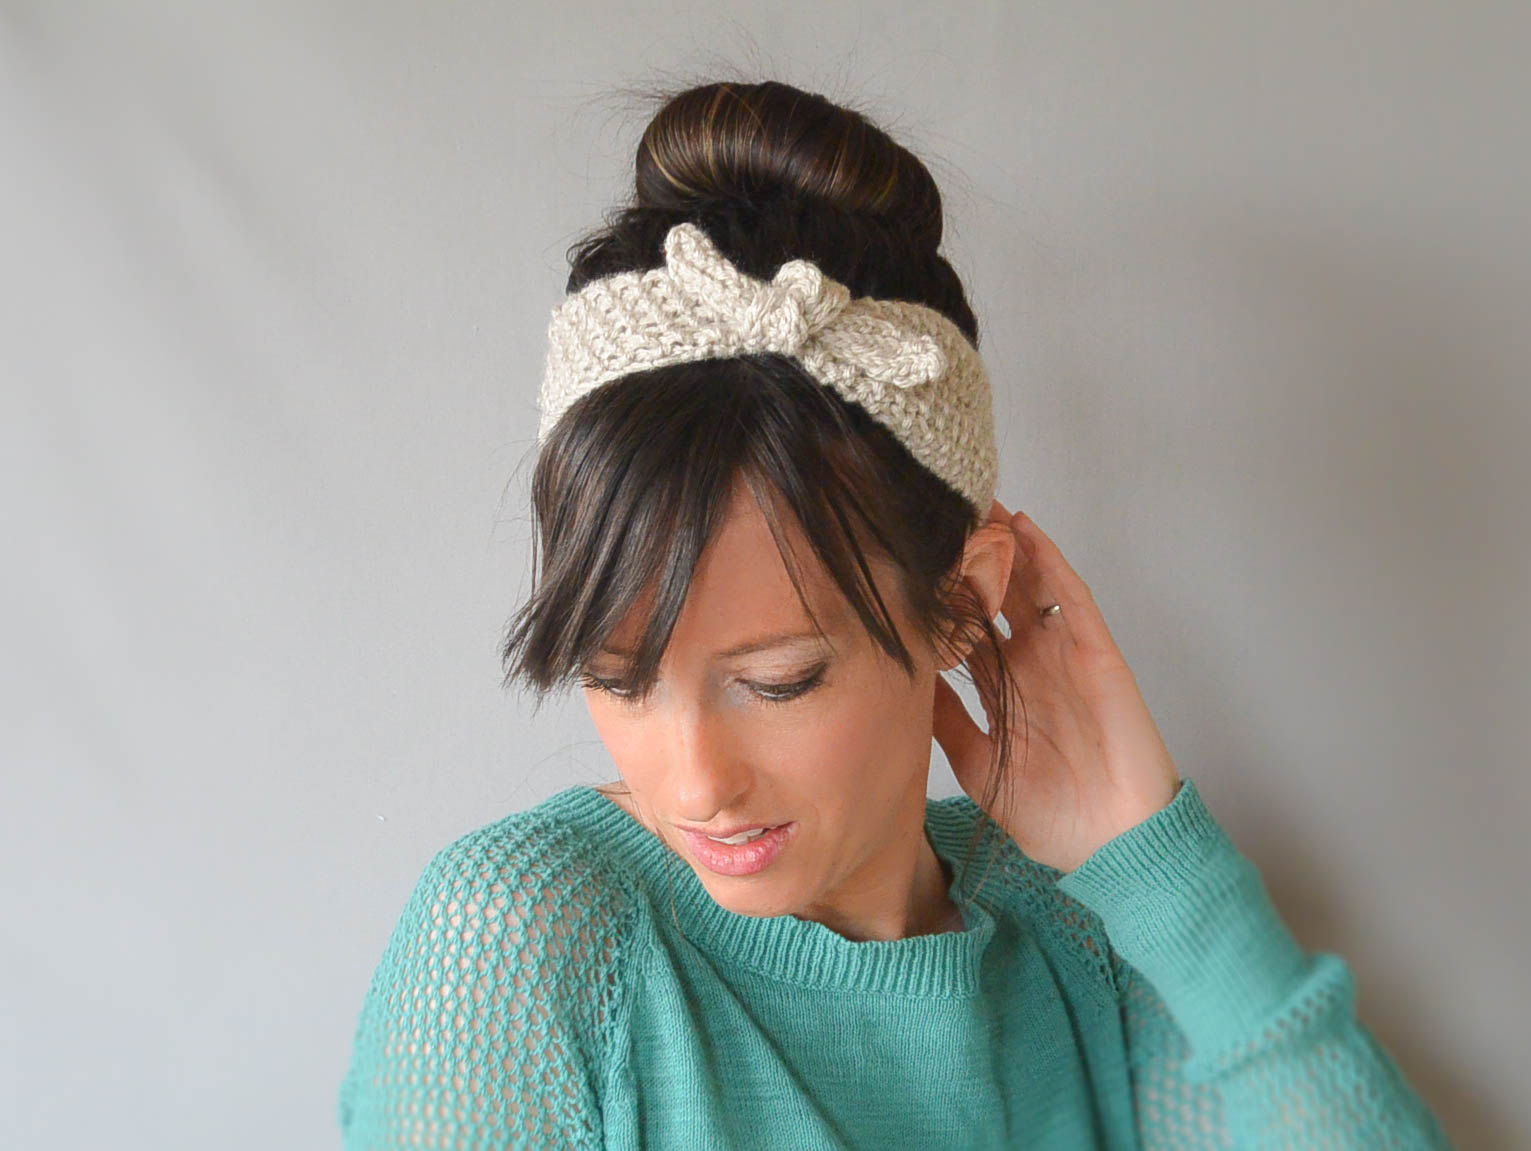 Knitting Patterns Headbands Knit Headband To Style Your Hair Crochet And Knitting Patterns 2019